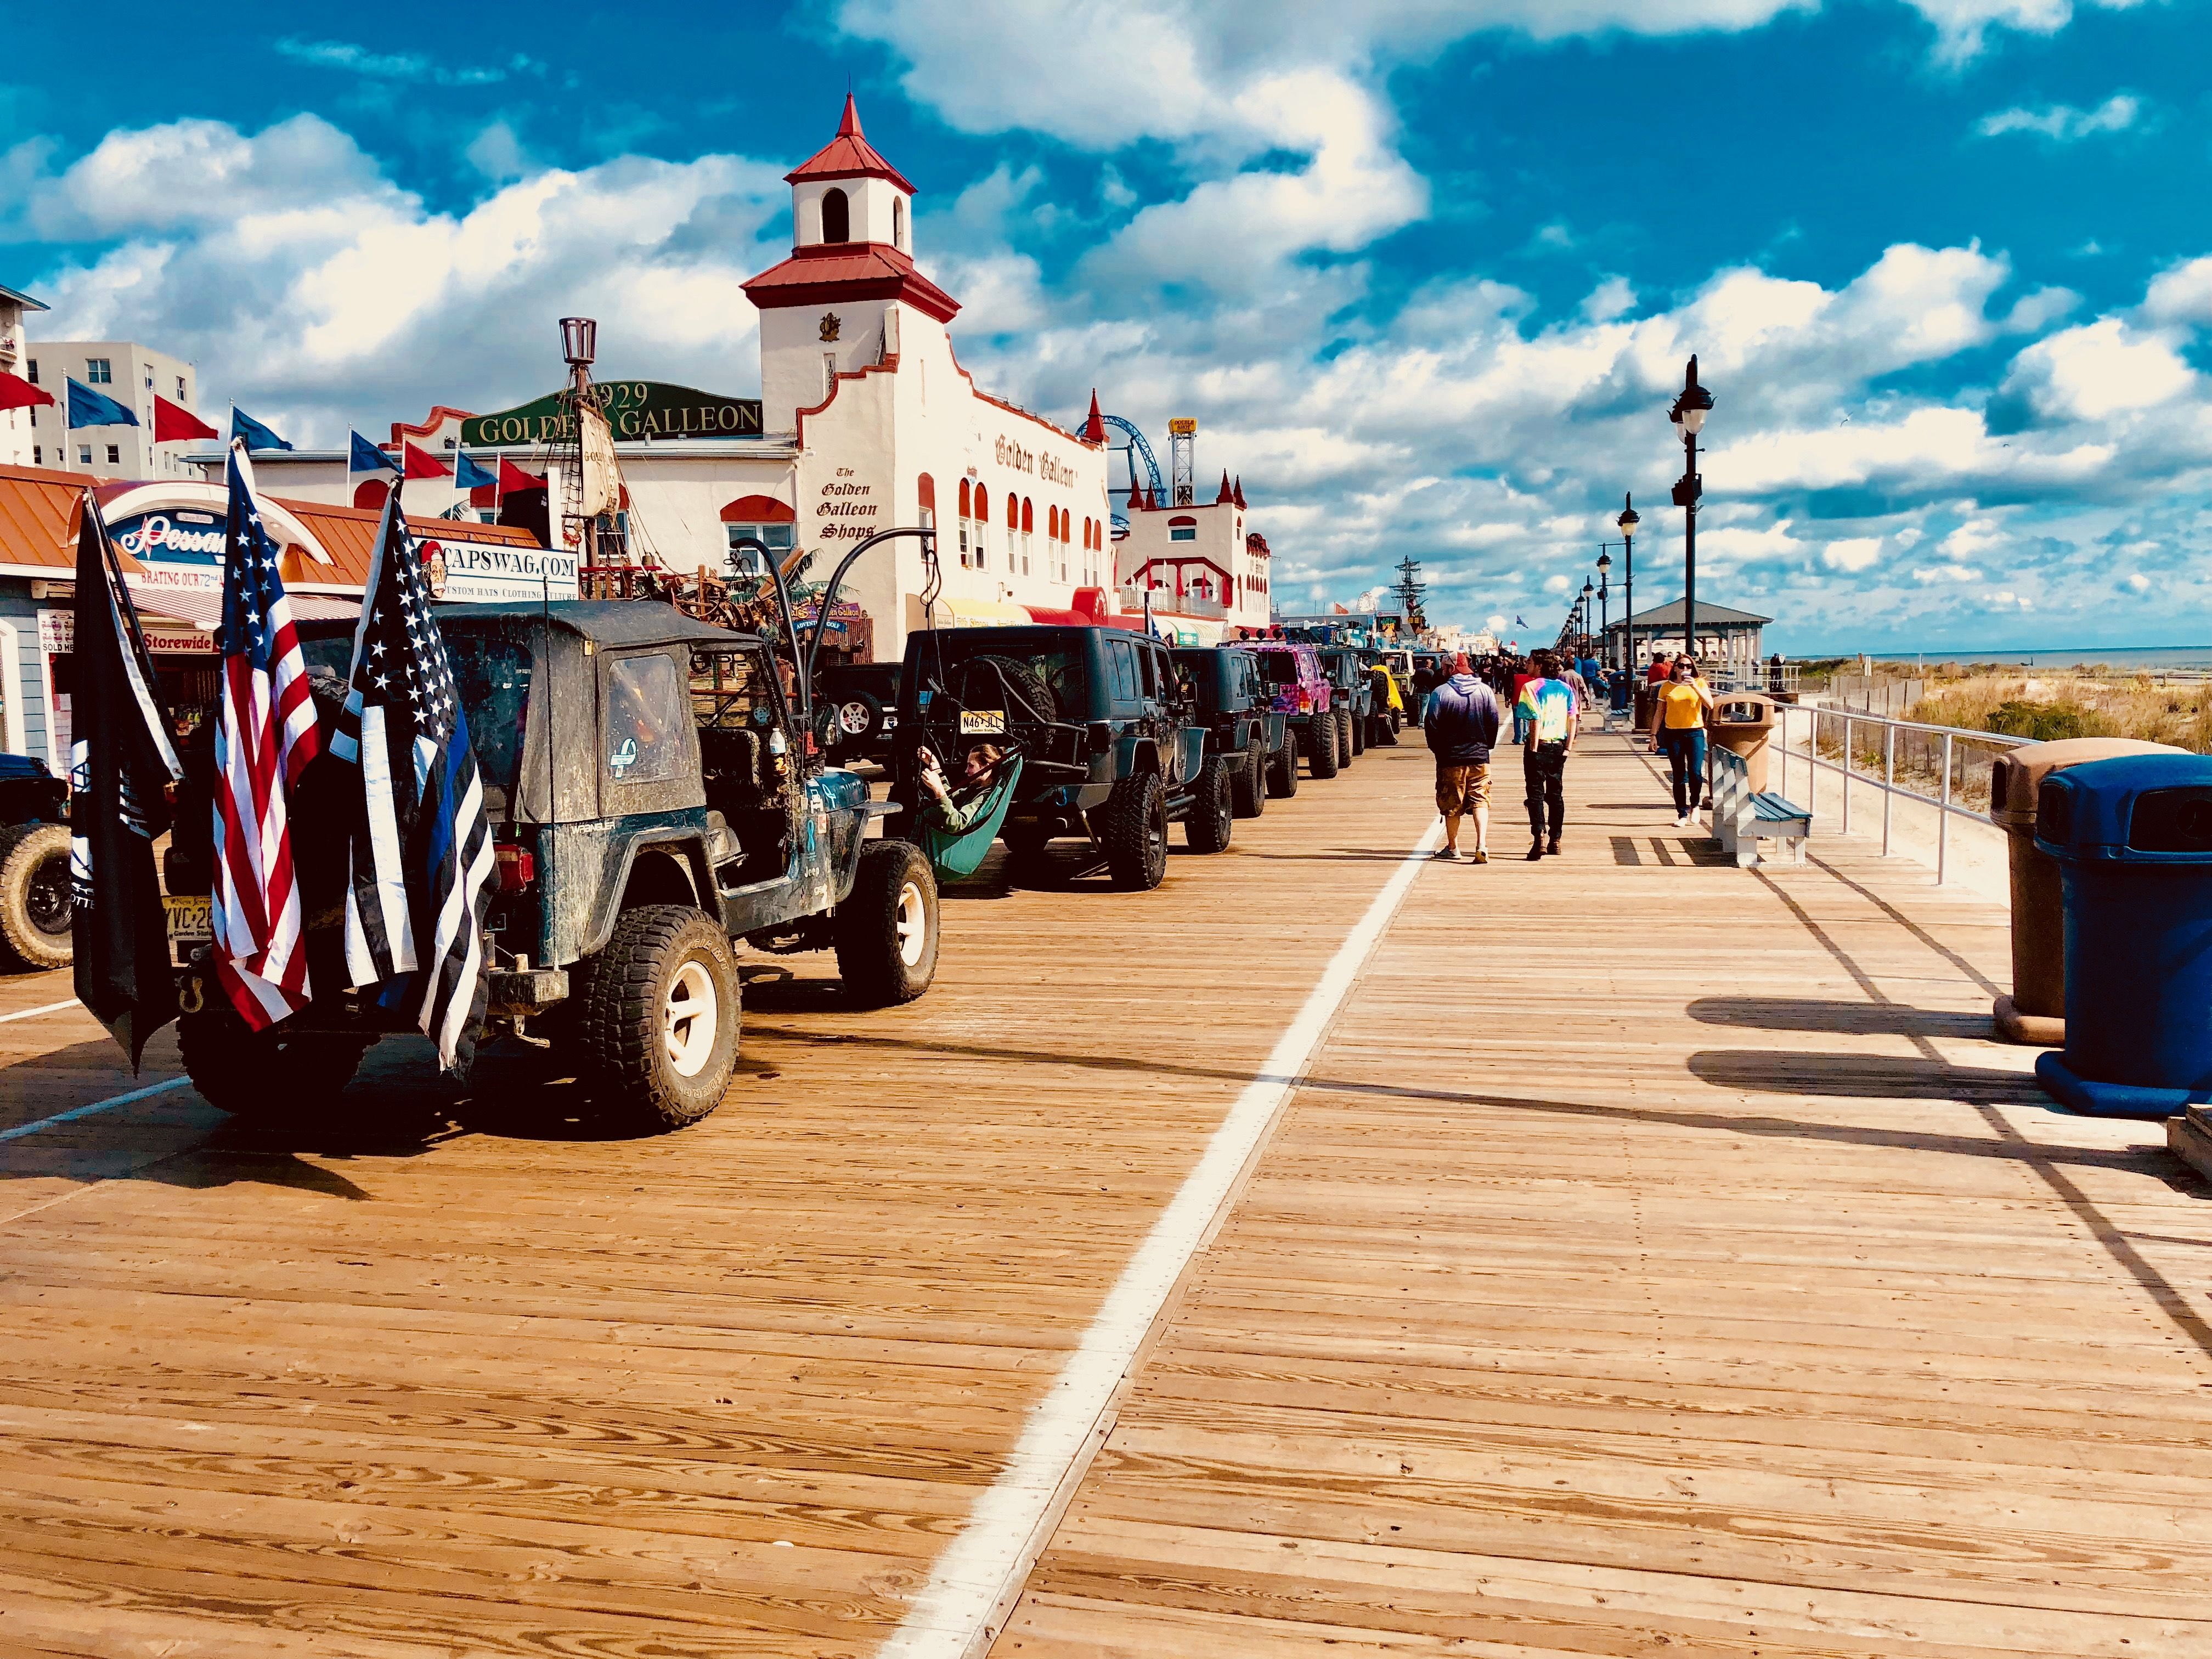 Nj Jeep Invasion 2018 Ocean City New Jersey Jeep Monster